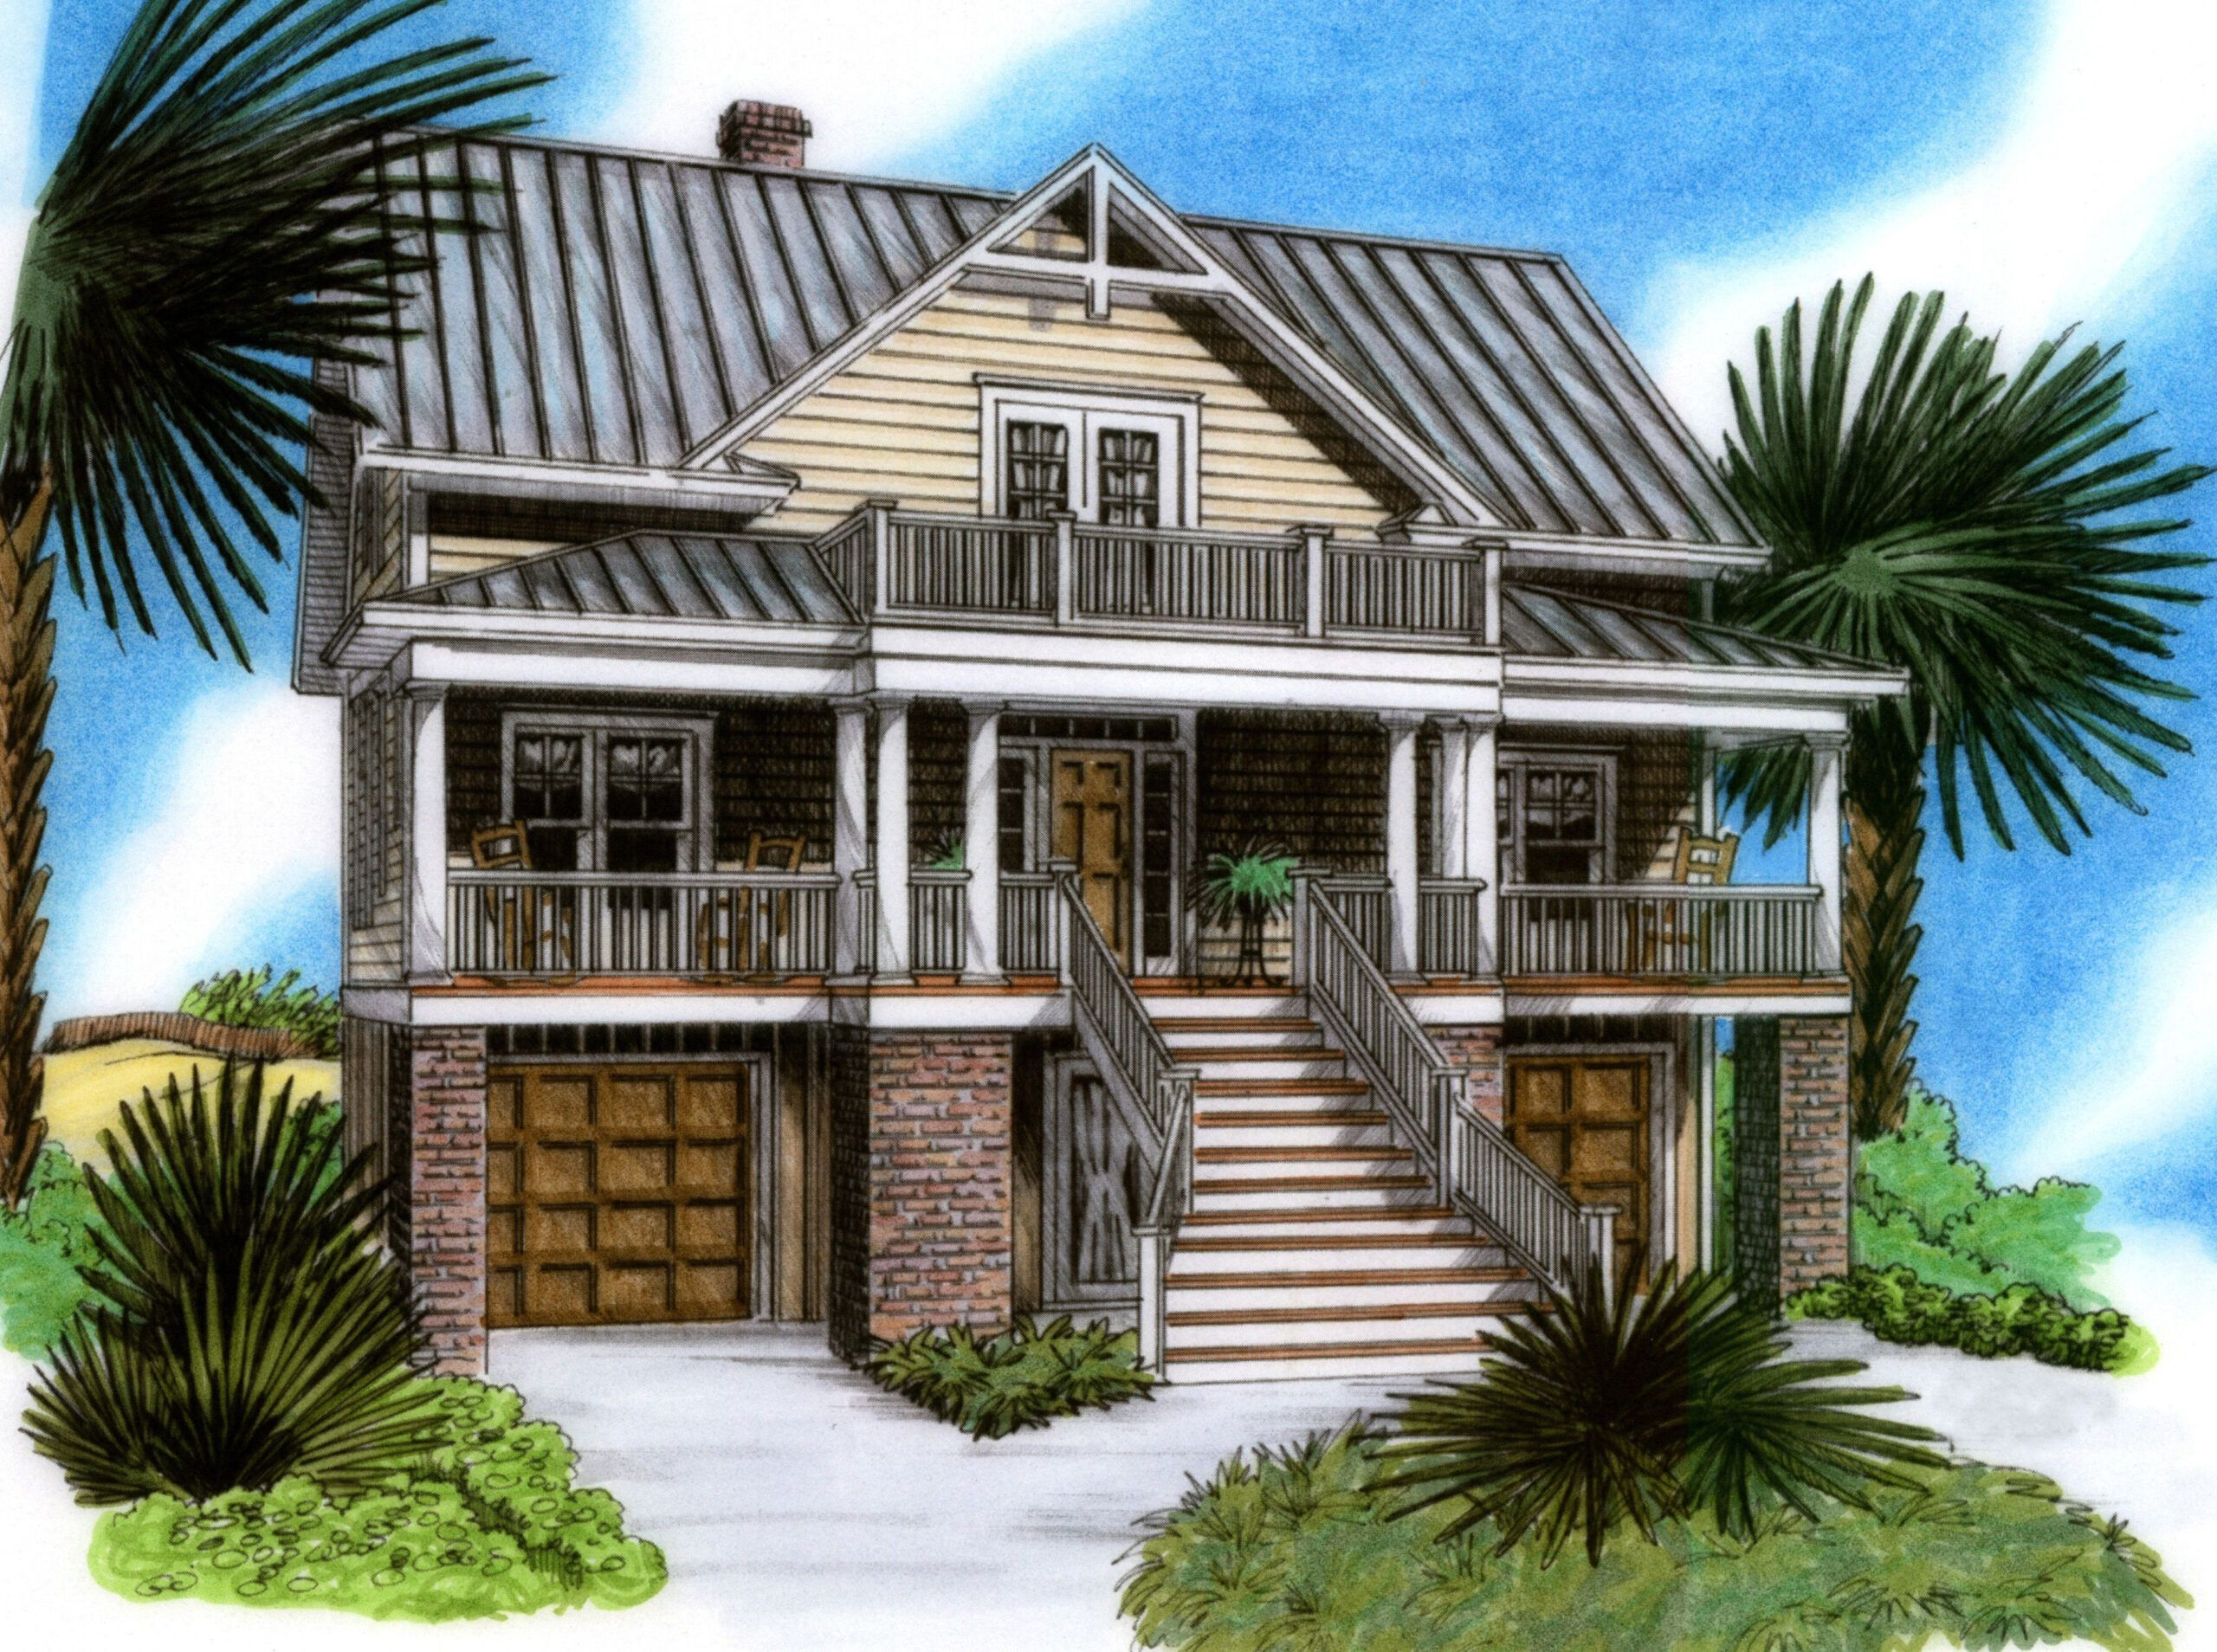 Raised Beach Cottage House Plans In 2020 Beach House Flooring Beach House Interior Modern Beach House